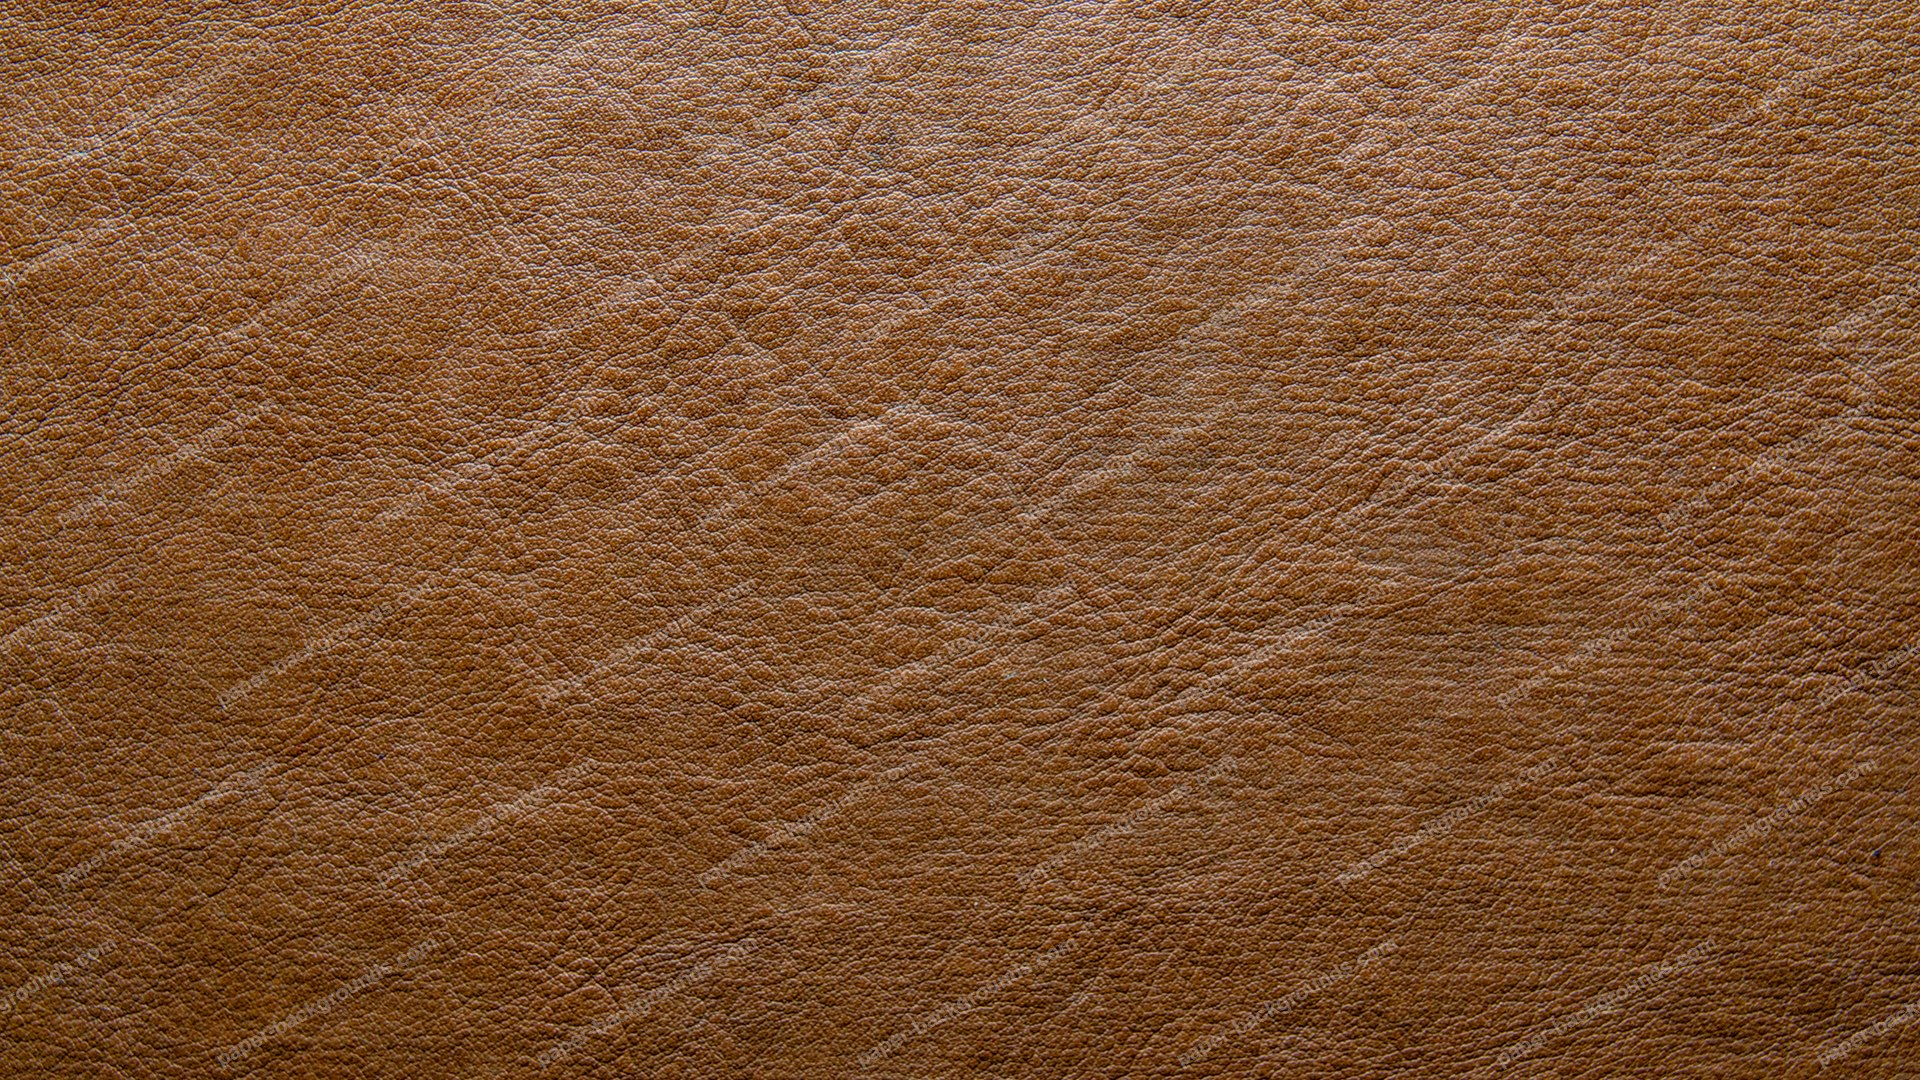 Brown Vintage Leather Texture HD 1920 x 1080p